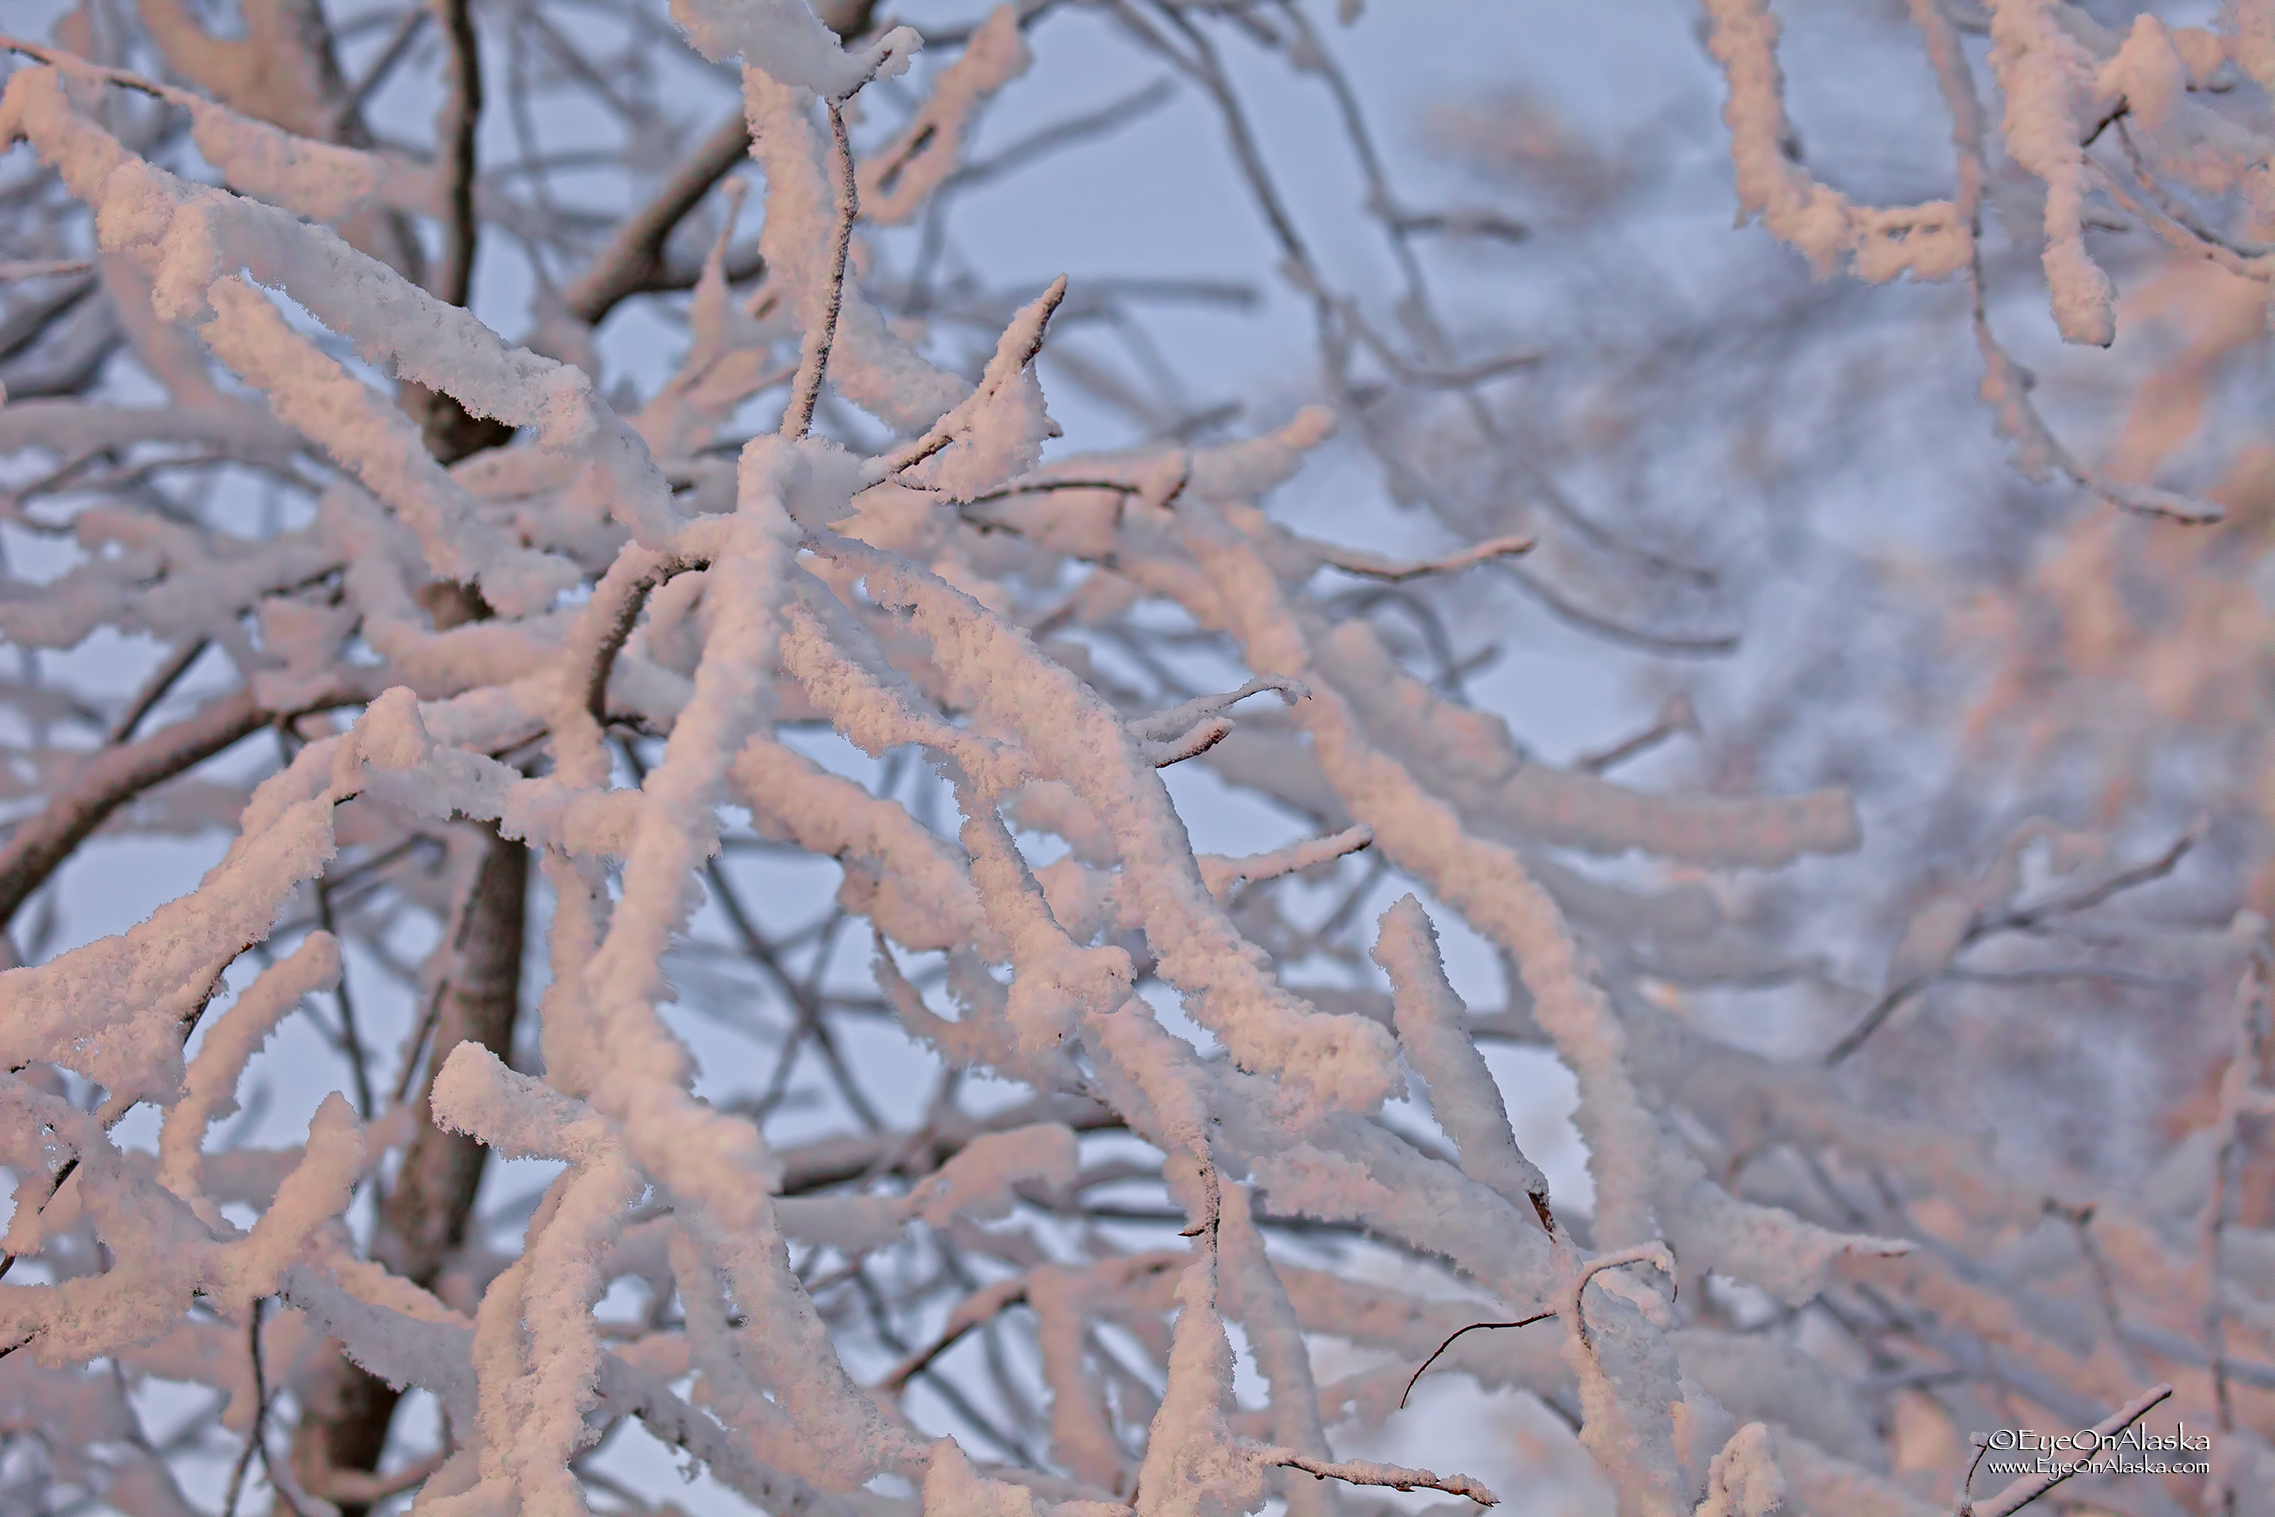 A thick coating of hoarfrost on everything.